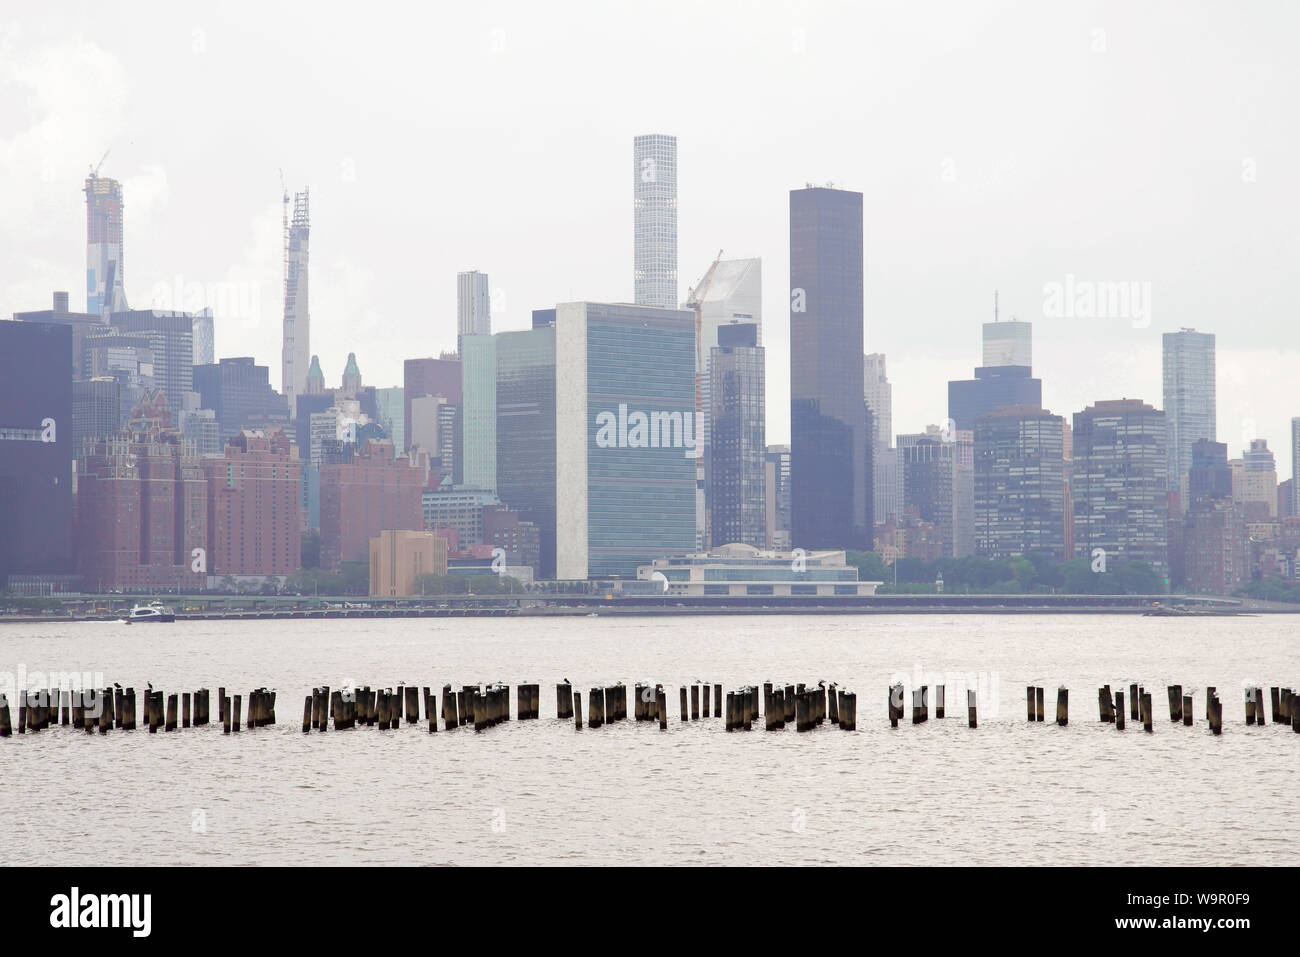 Panoramic view over Manhattan from Greenpoint, New York City, USA. Stock Photo